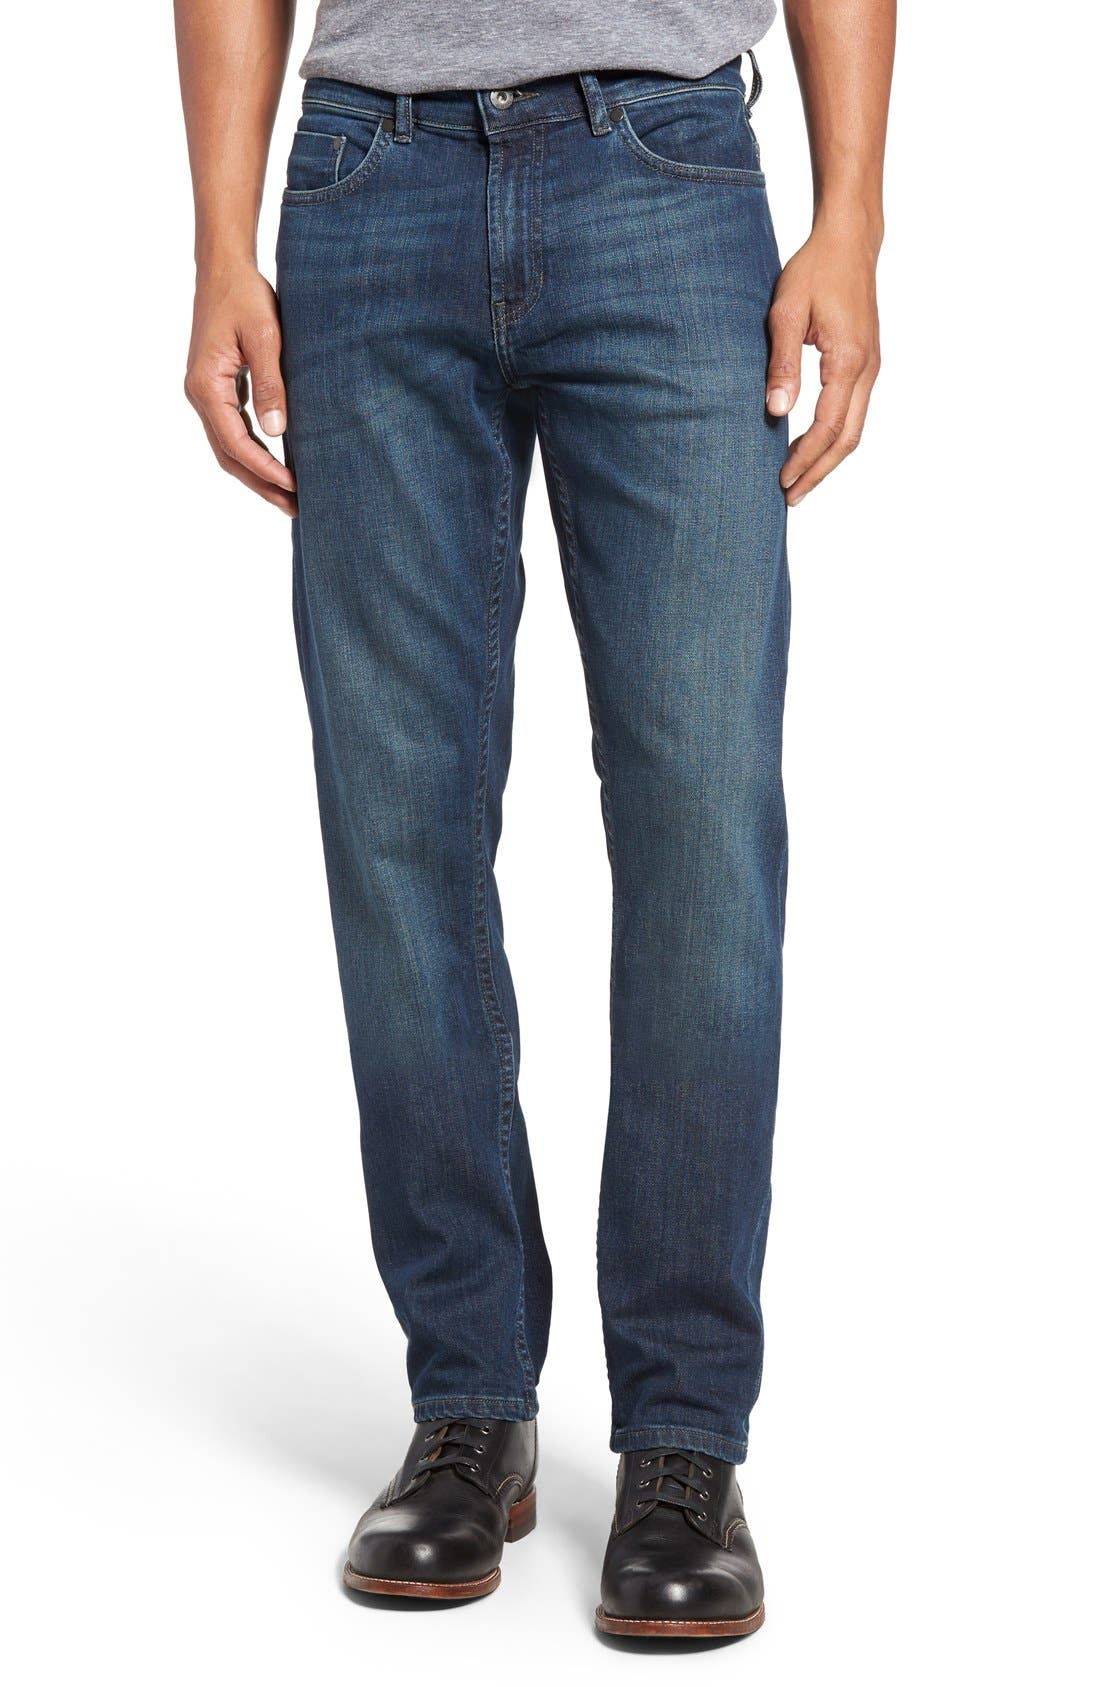 Calvert Slim Fit Jeans,                             Main thumbnail 1, color,                             400